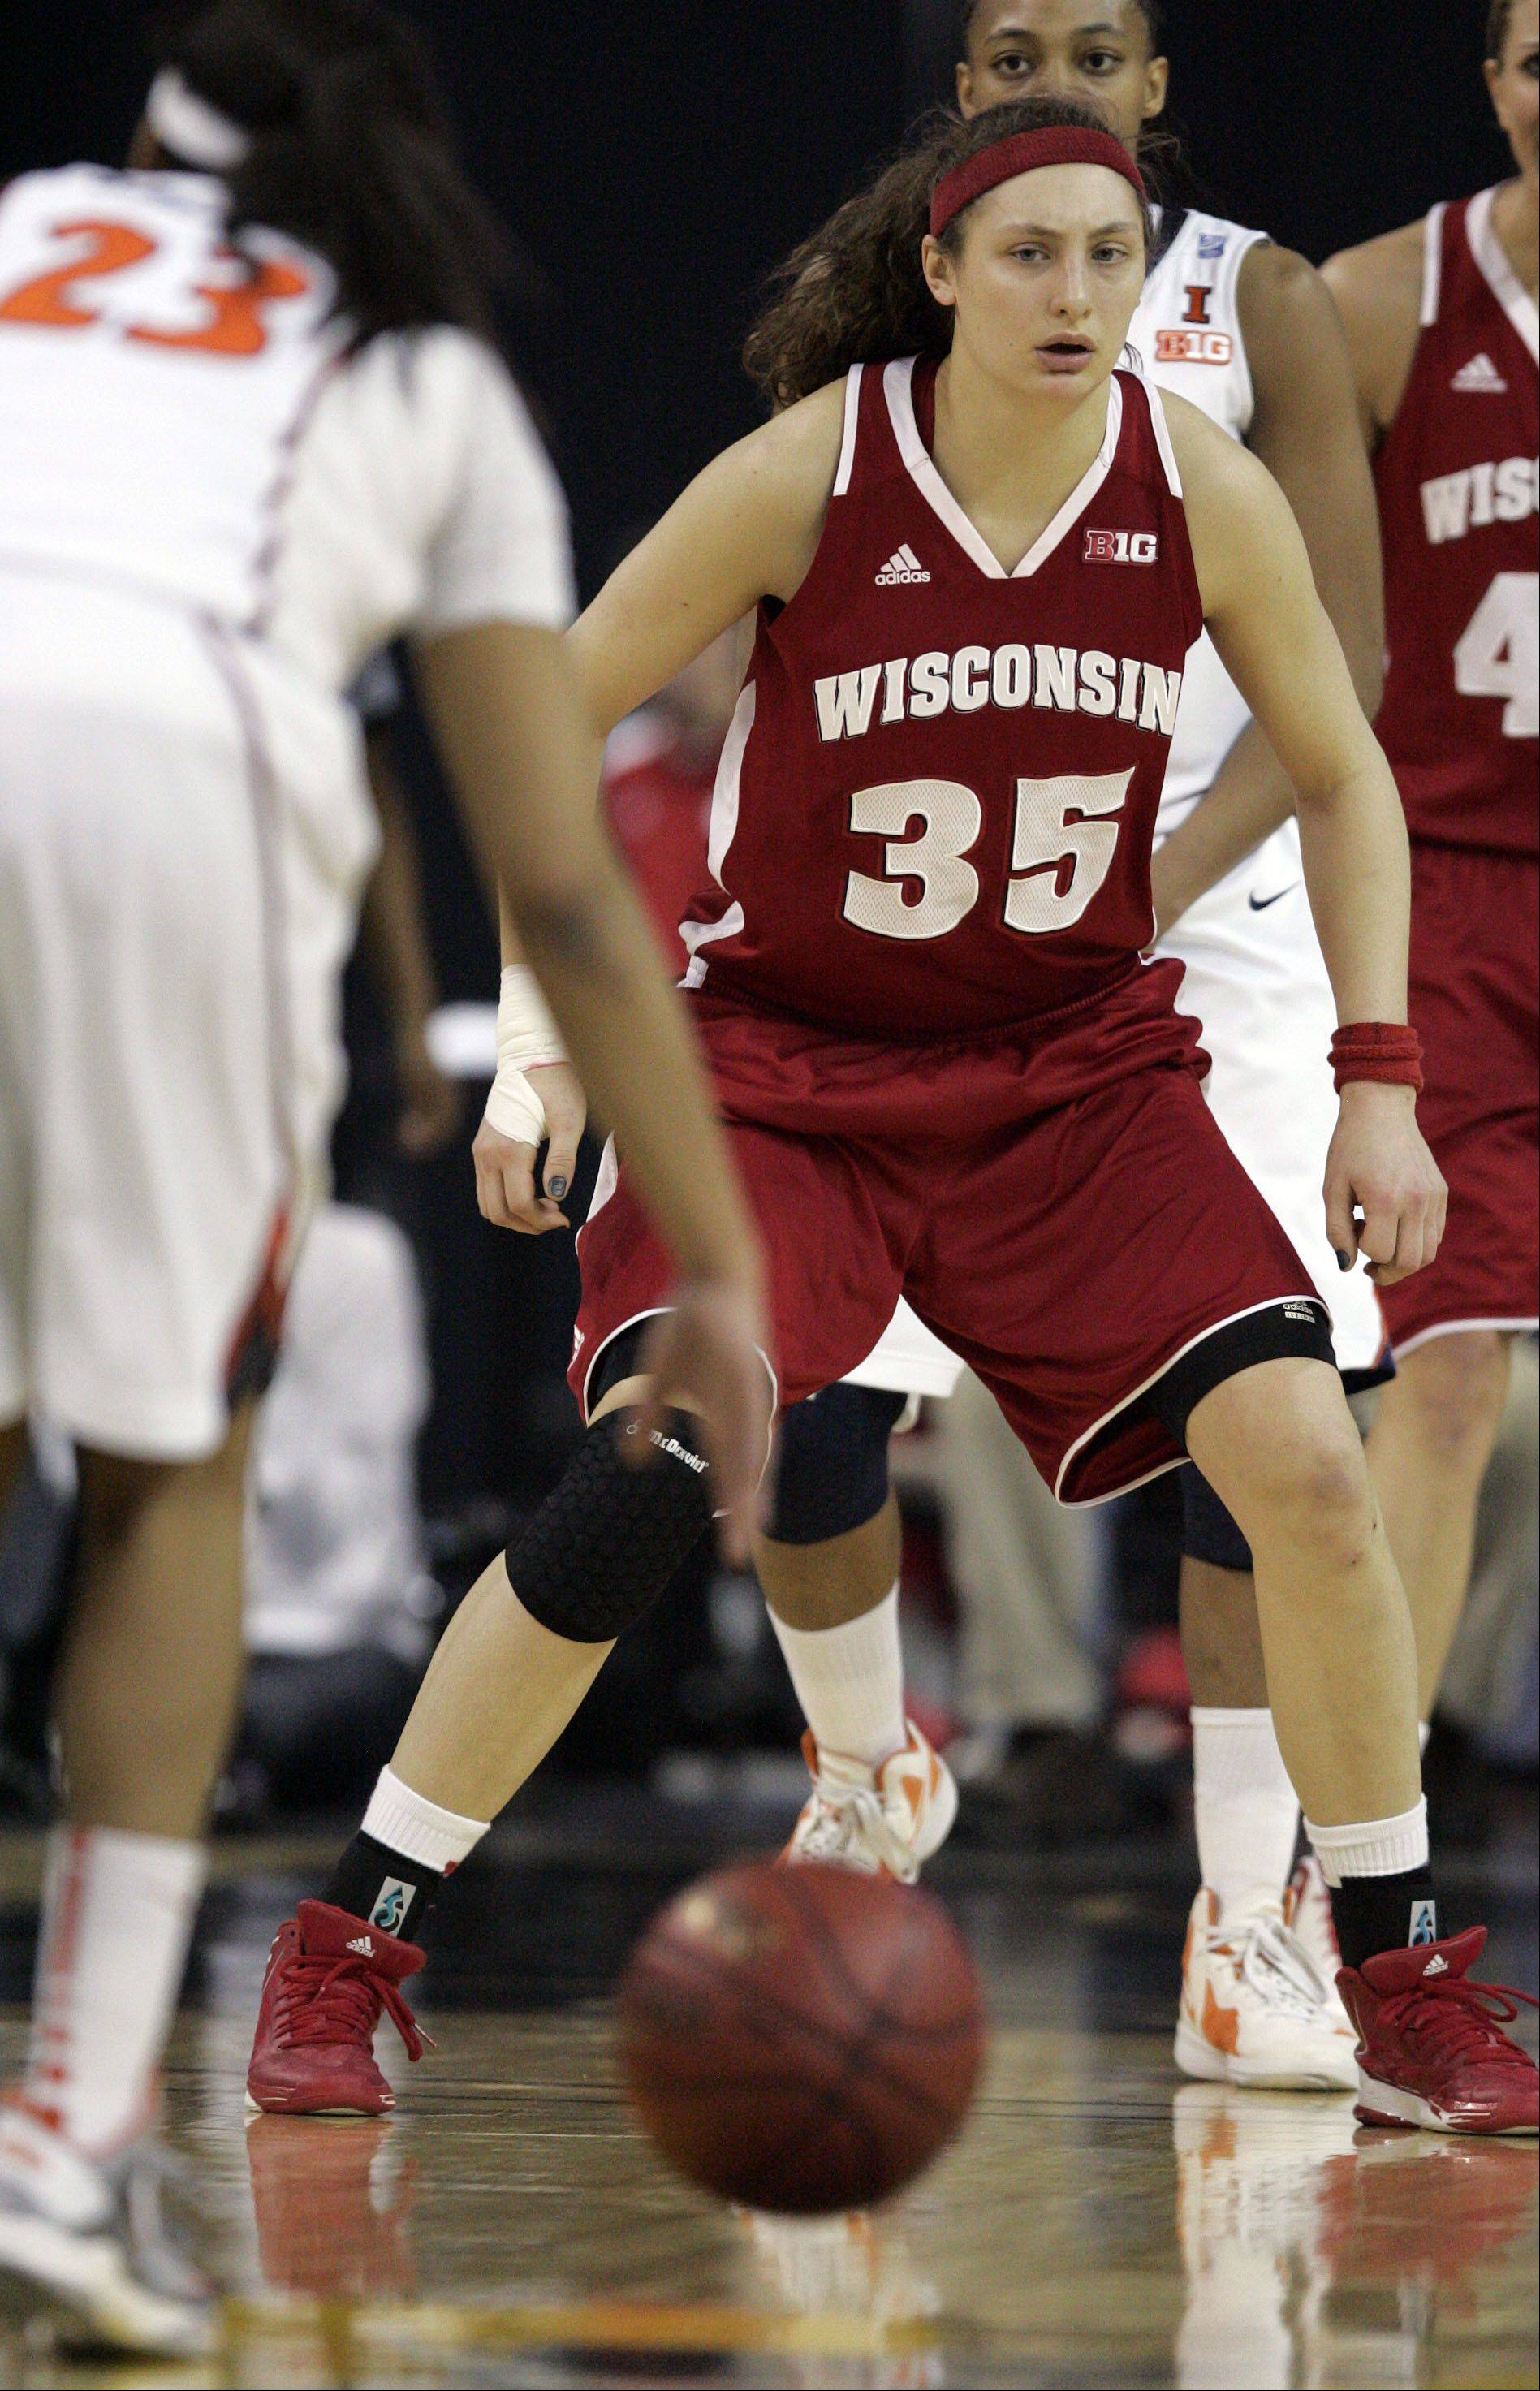 Wisconsin sophomore Jacki Gulczynski (35) of Bartlett keeps an eye on the ball during the Badgers' 58-57 upset of Illinois at the Big Ten women's basketball tournament at the Sears Centre in Hoffman Estates Thursday. Wisconsin will play Purdue in the quarterfinals at approximately 2 p.m. Friday.